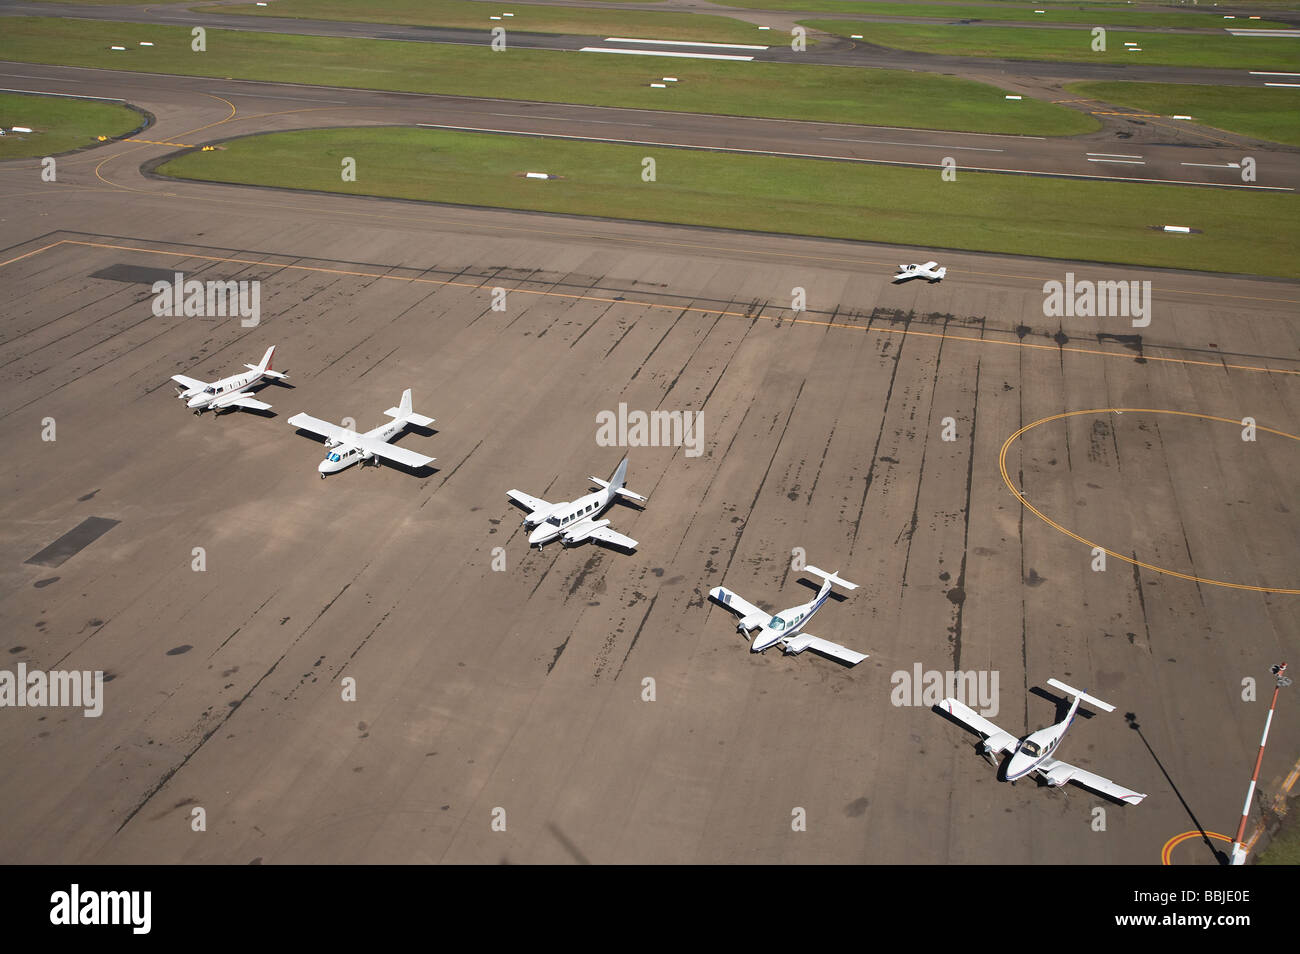 Row of Planes Bankstown Airport Sydney New South Wales Australia aerial - Stock Image